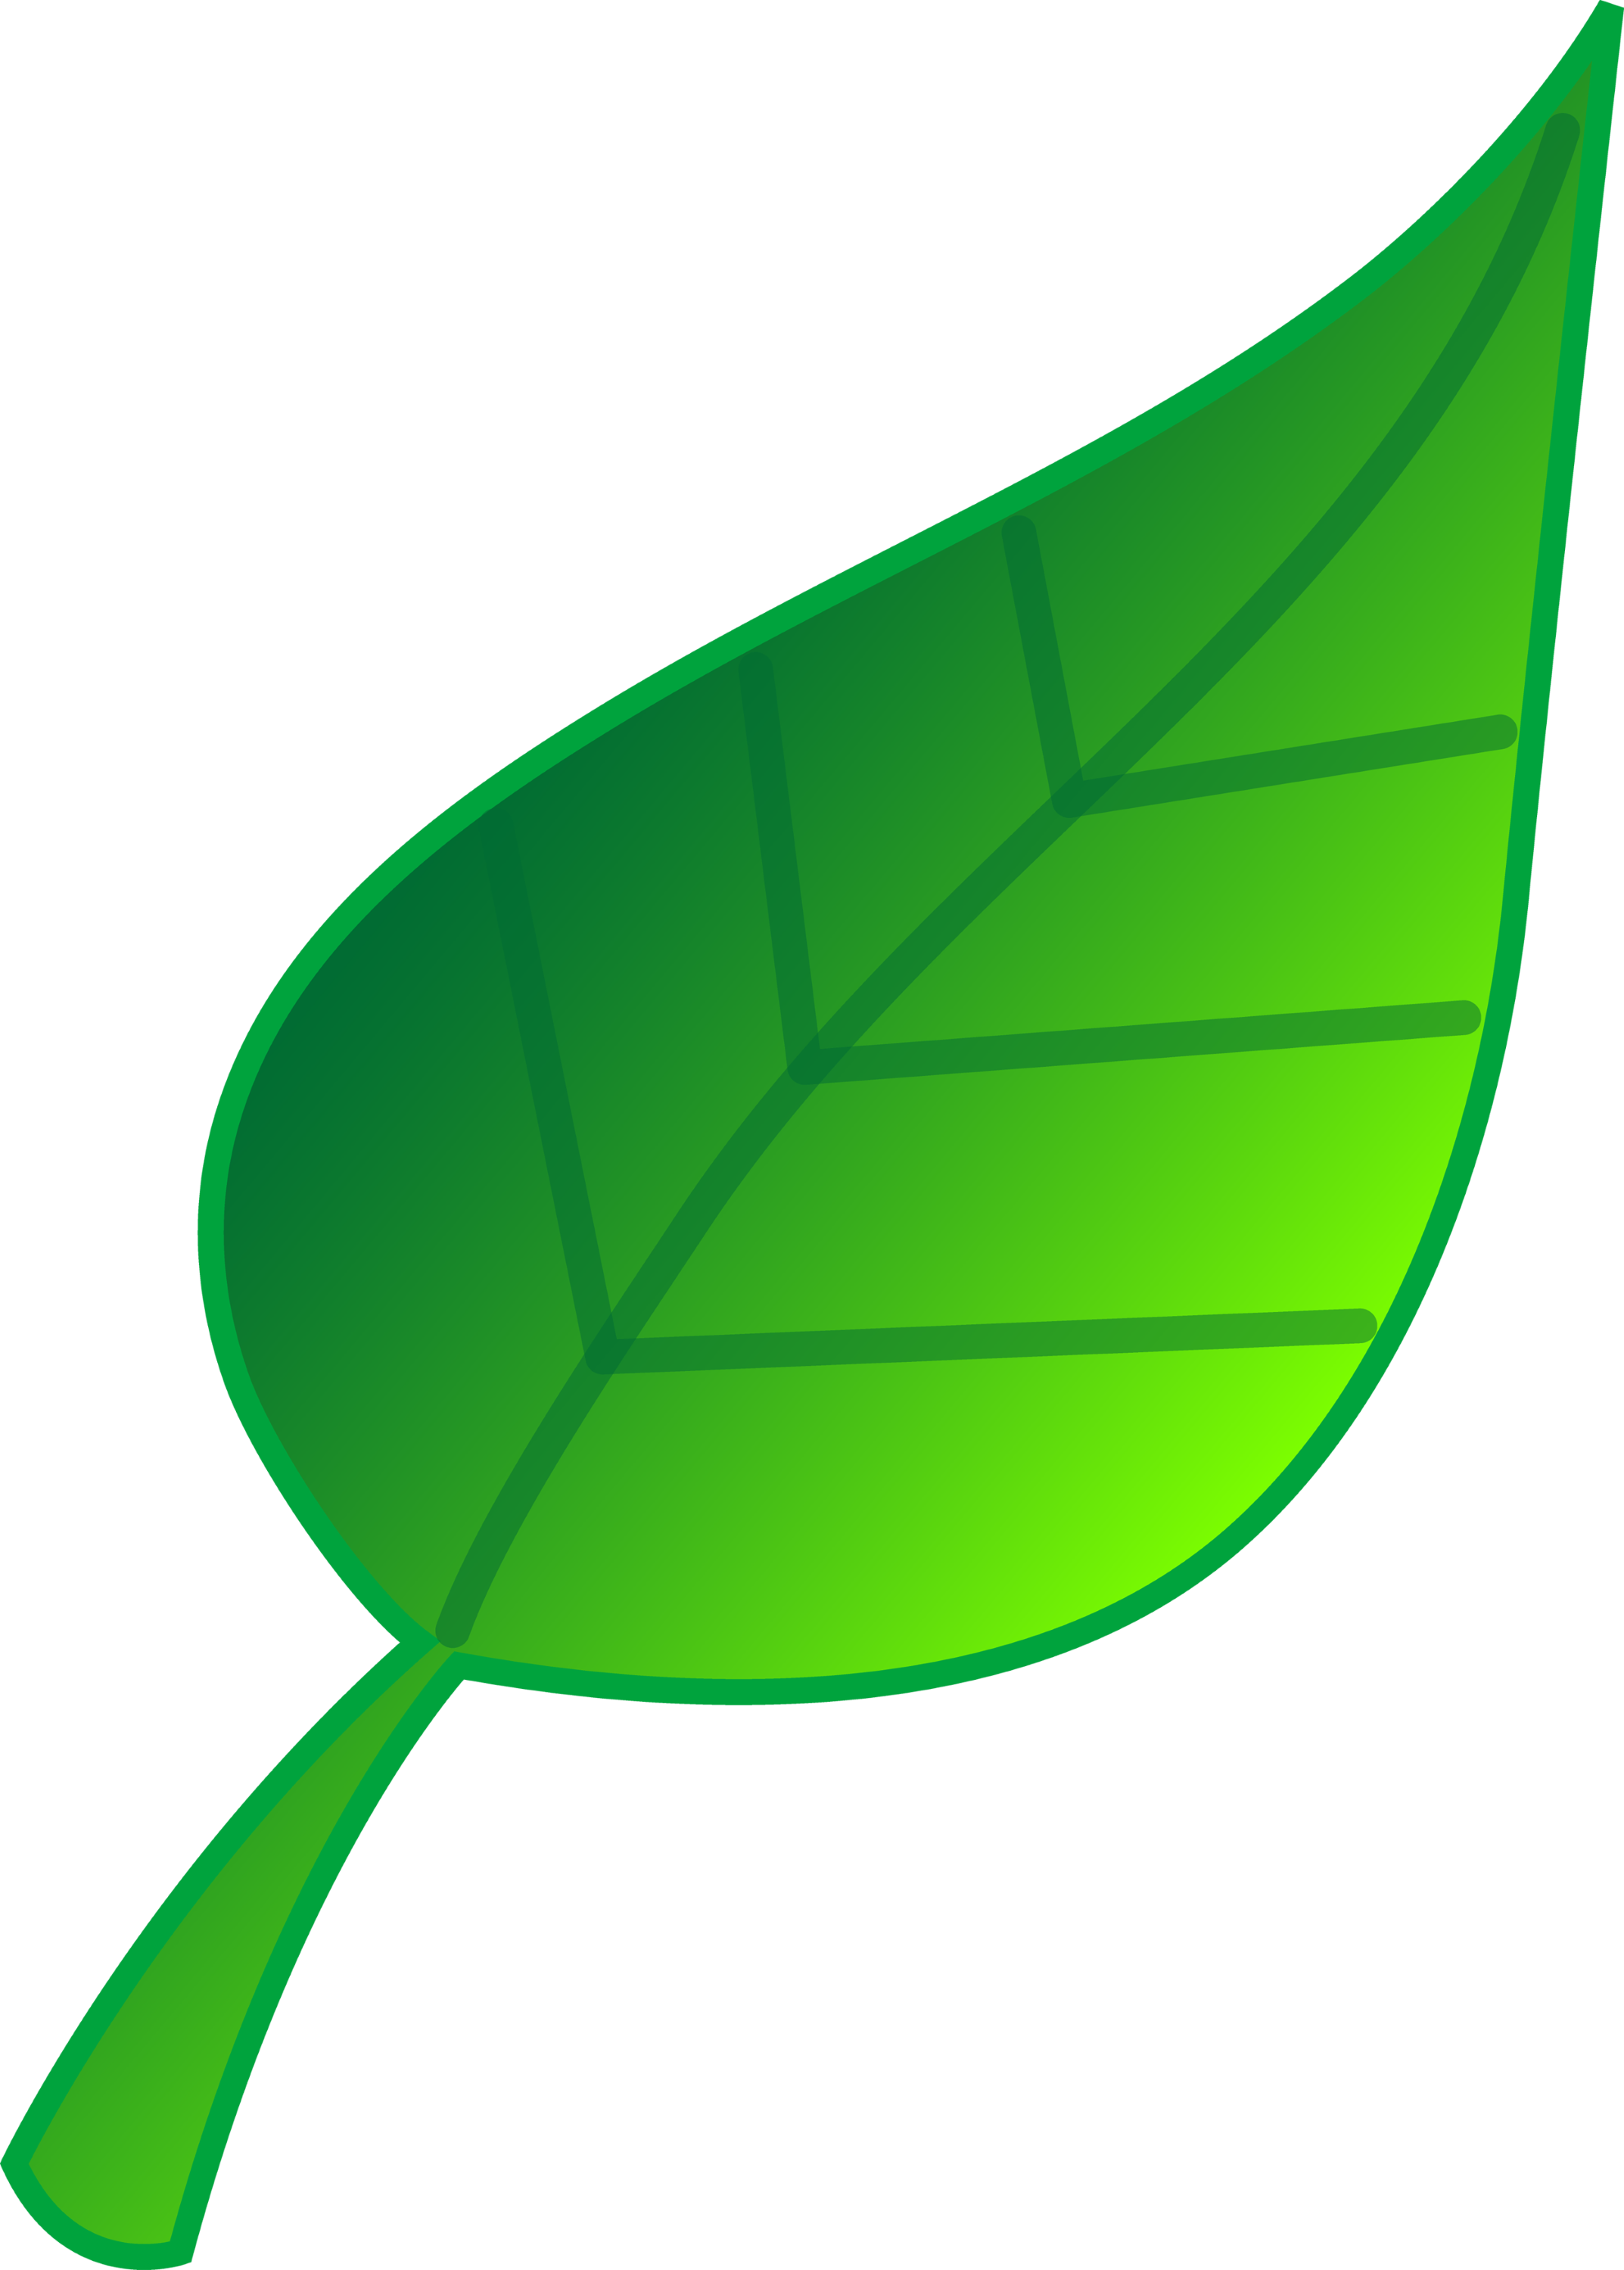 clipart of green - photo #37